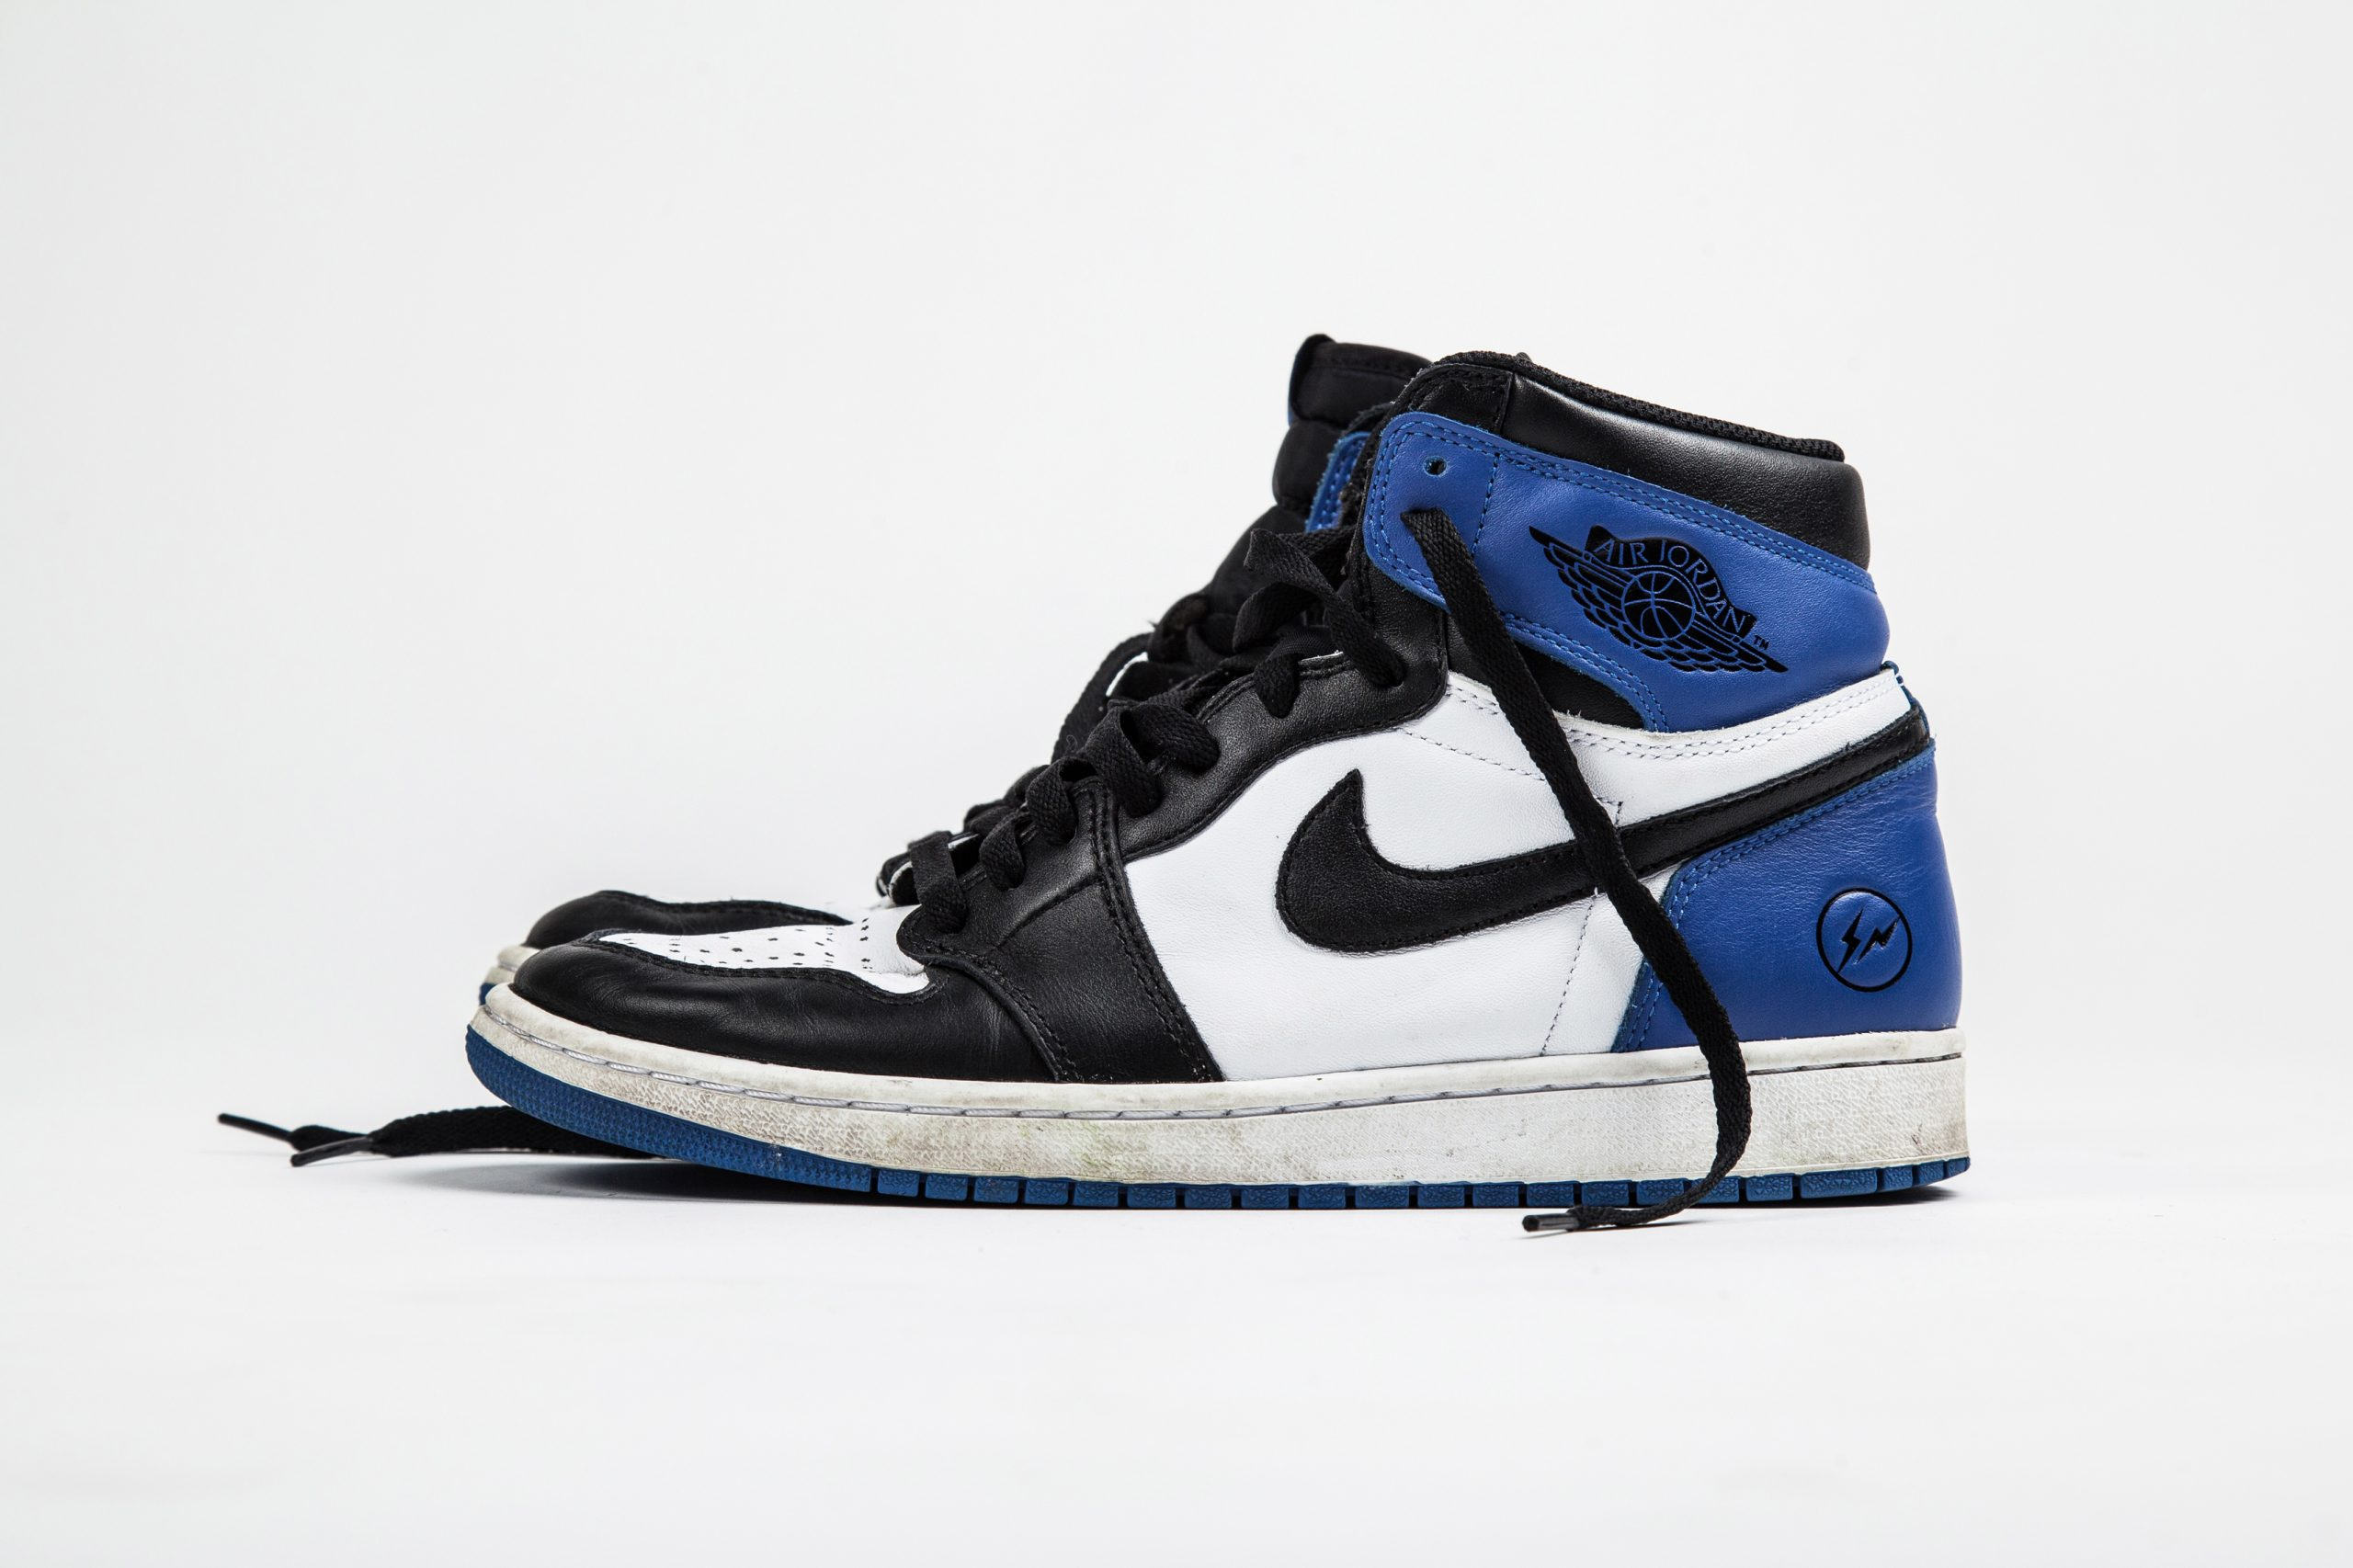 8b5e38e7f69c ... like a stamp colorway difference with an actual story behind it that  makes a product like a fragment design x Jordan 1 sneaker more than just the  hype ...